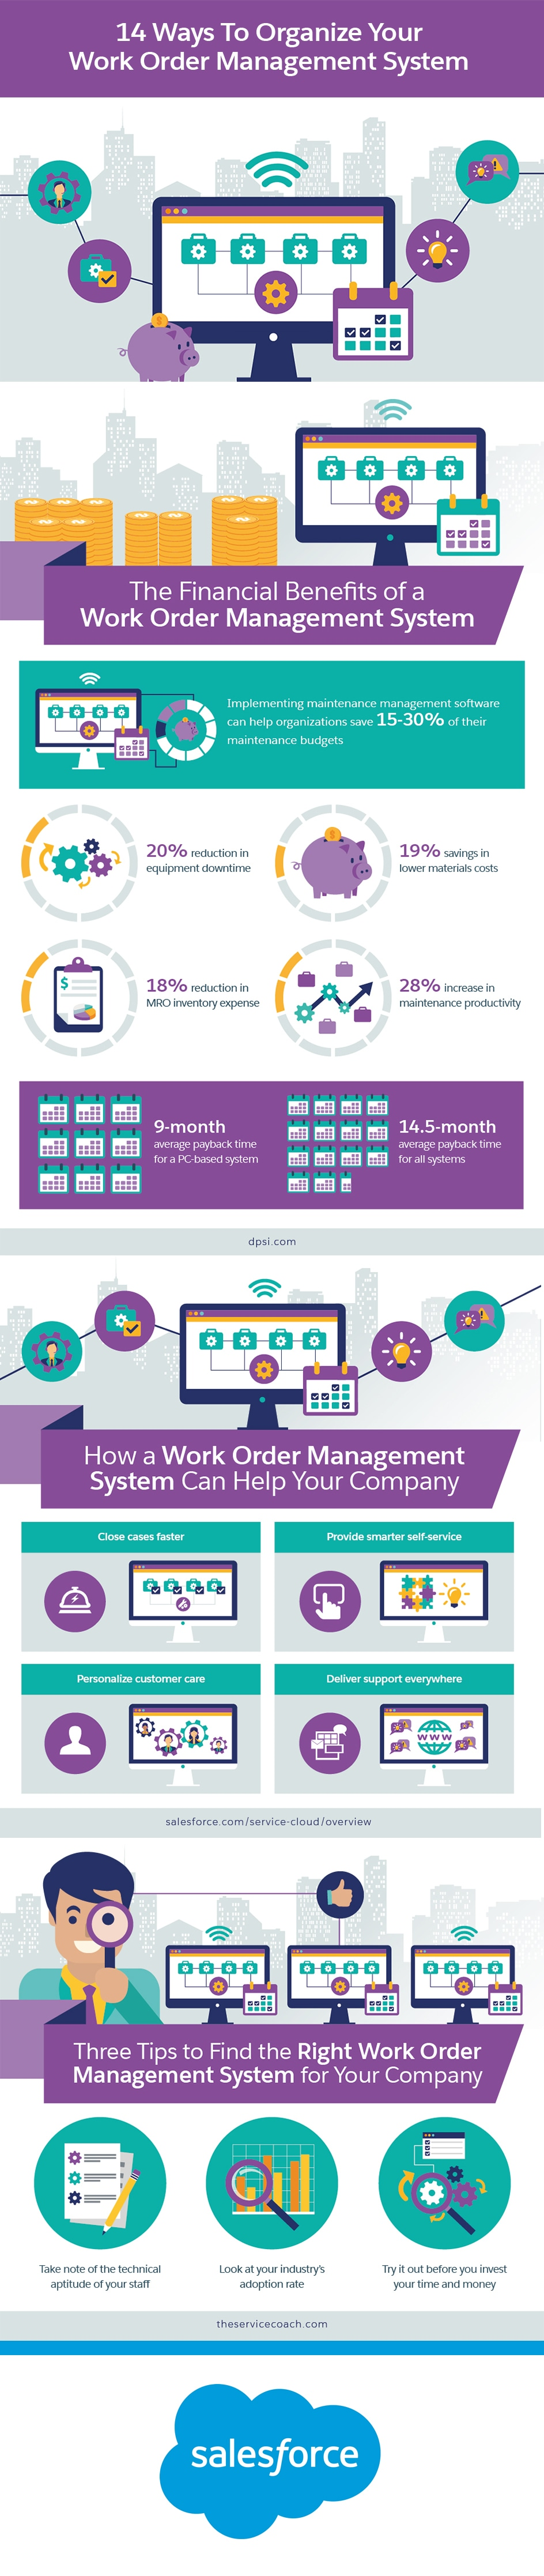 14 Ways to Organize Your Work Order Management Software